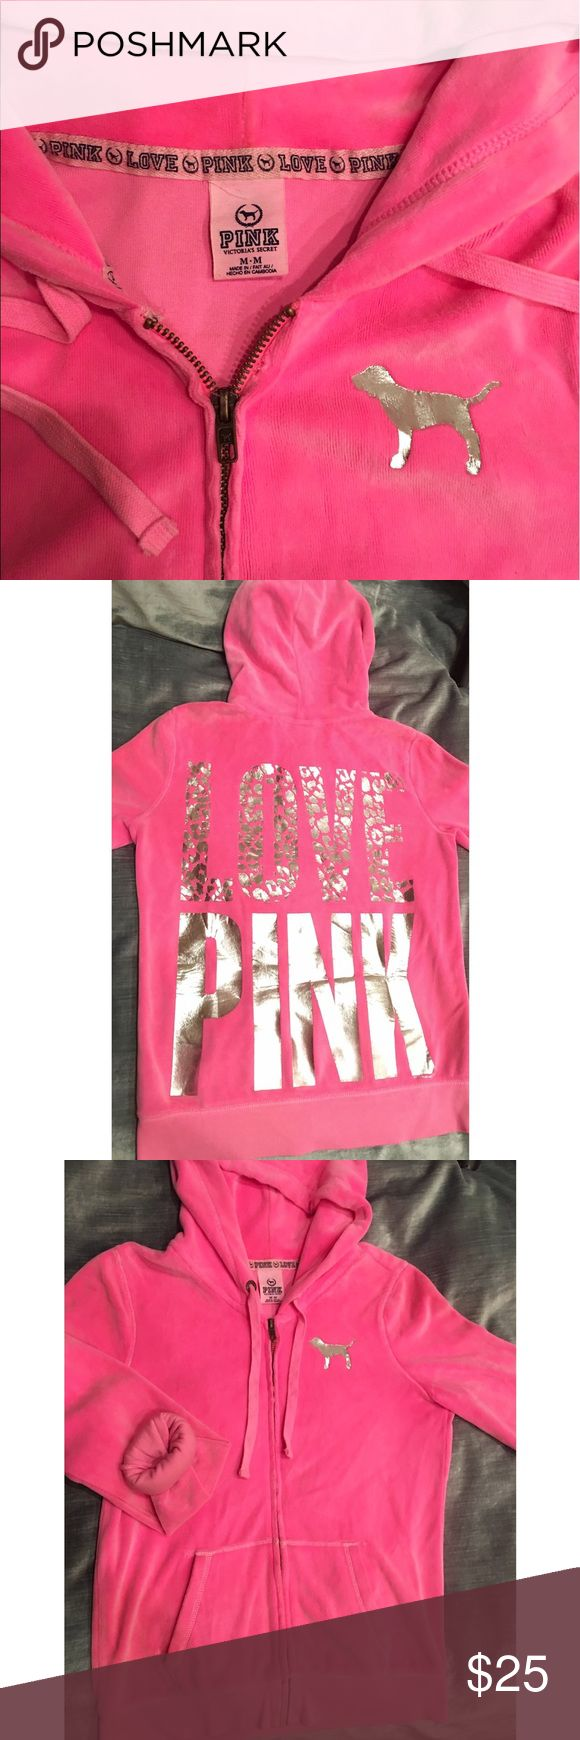 PINK VS Hott Pink Velour Hoodie  Hot pink velour hoodie by Victoria's Secret. Silver dog on front and silver lettering on back. Sleeves have the same rubber band type thing that is at the bottom of VS sweatpants! This is my sisters...she gets rid of things she has barely worn and it looks brand new (color pigment of jacket is really bright) except for a tiny bit of wear on the elbows, may even come out with an additional tumble dry. Size M  ✨ PINK Victoria's Secret Jackets & Coats